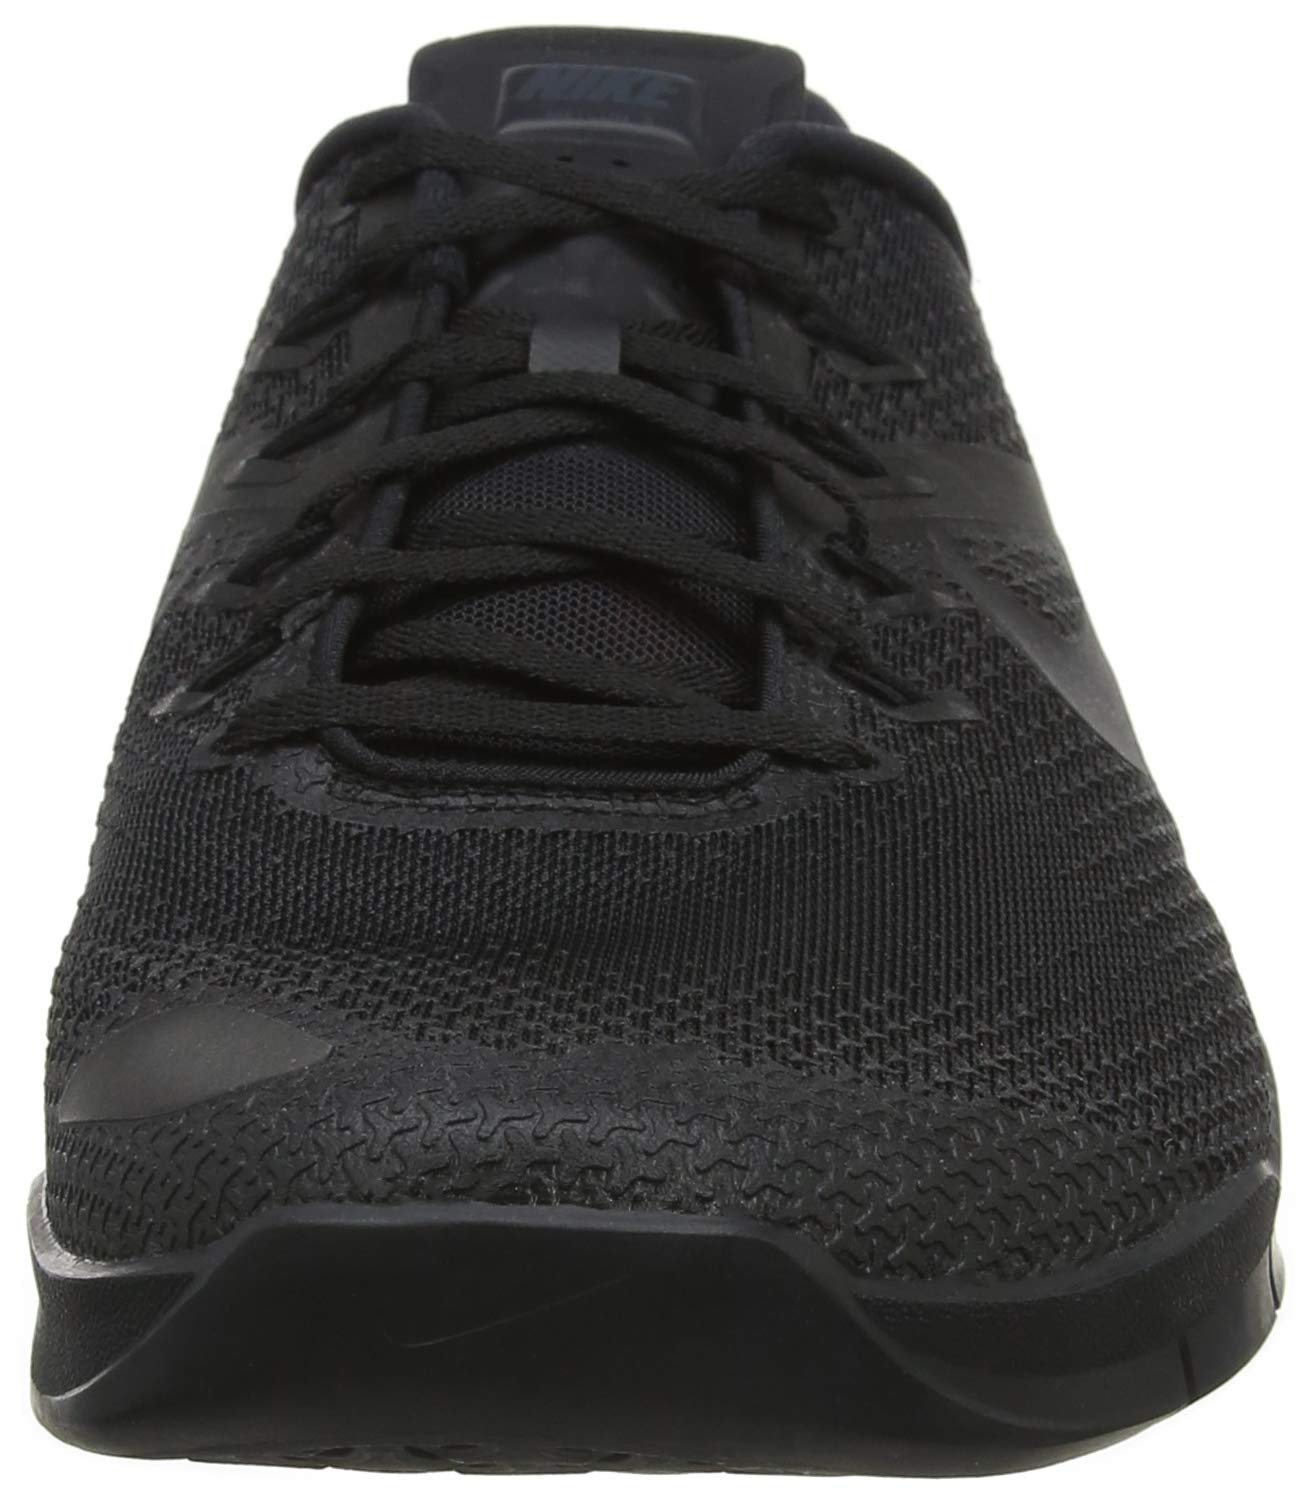 Nike Men's Metcon 4 Training Shoe Black/Black-Black-Hyper Crimson 7.0 by Nike (Image #4)